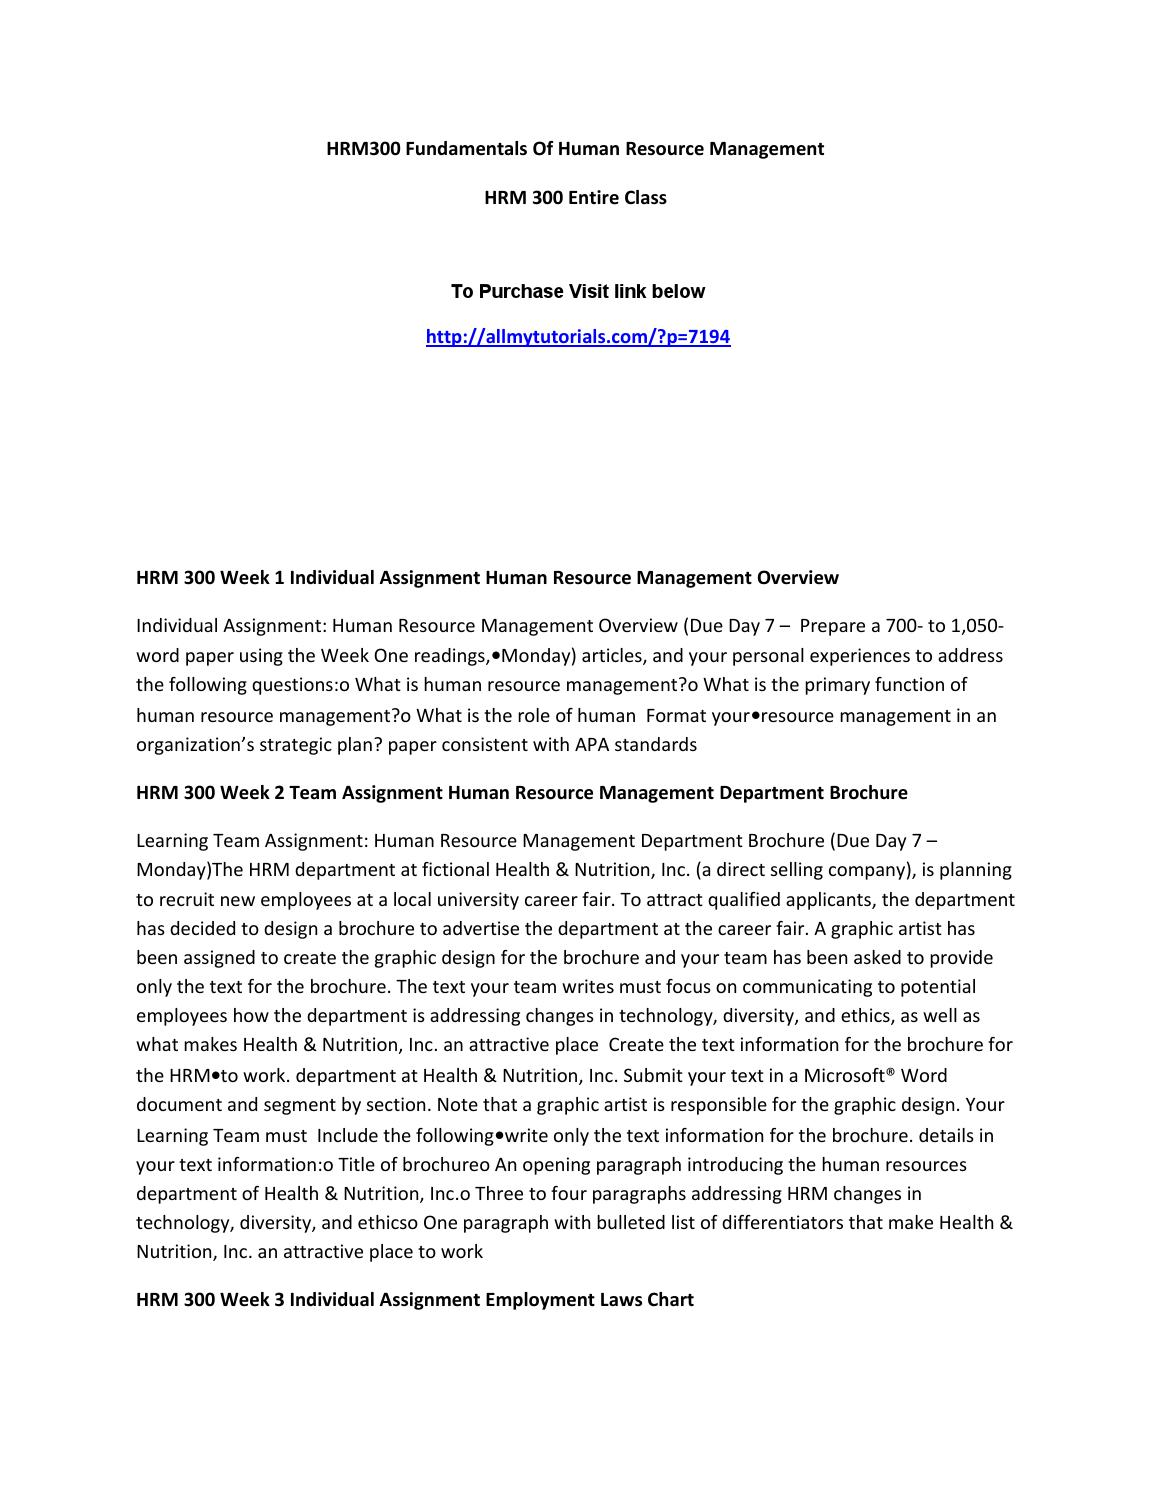 Hrm 300 human resource management overview